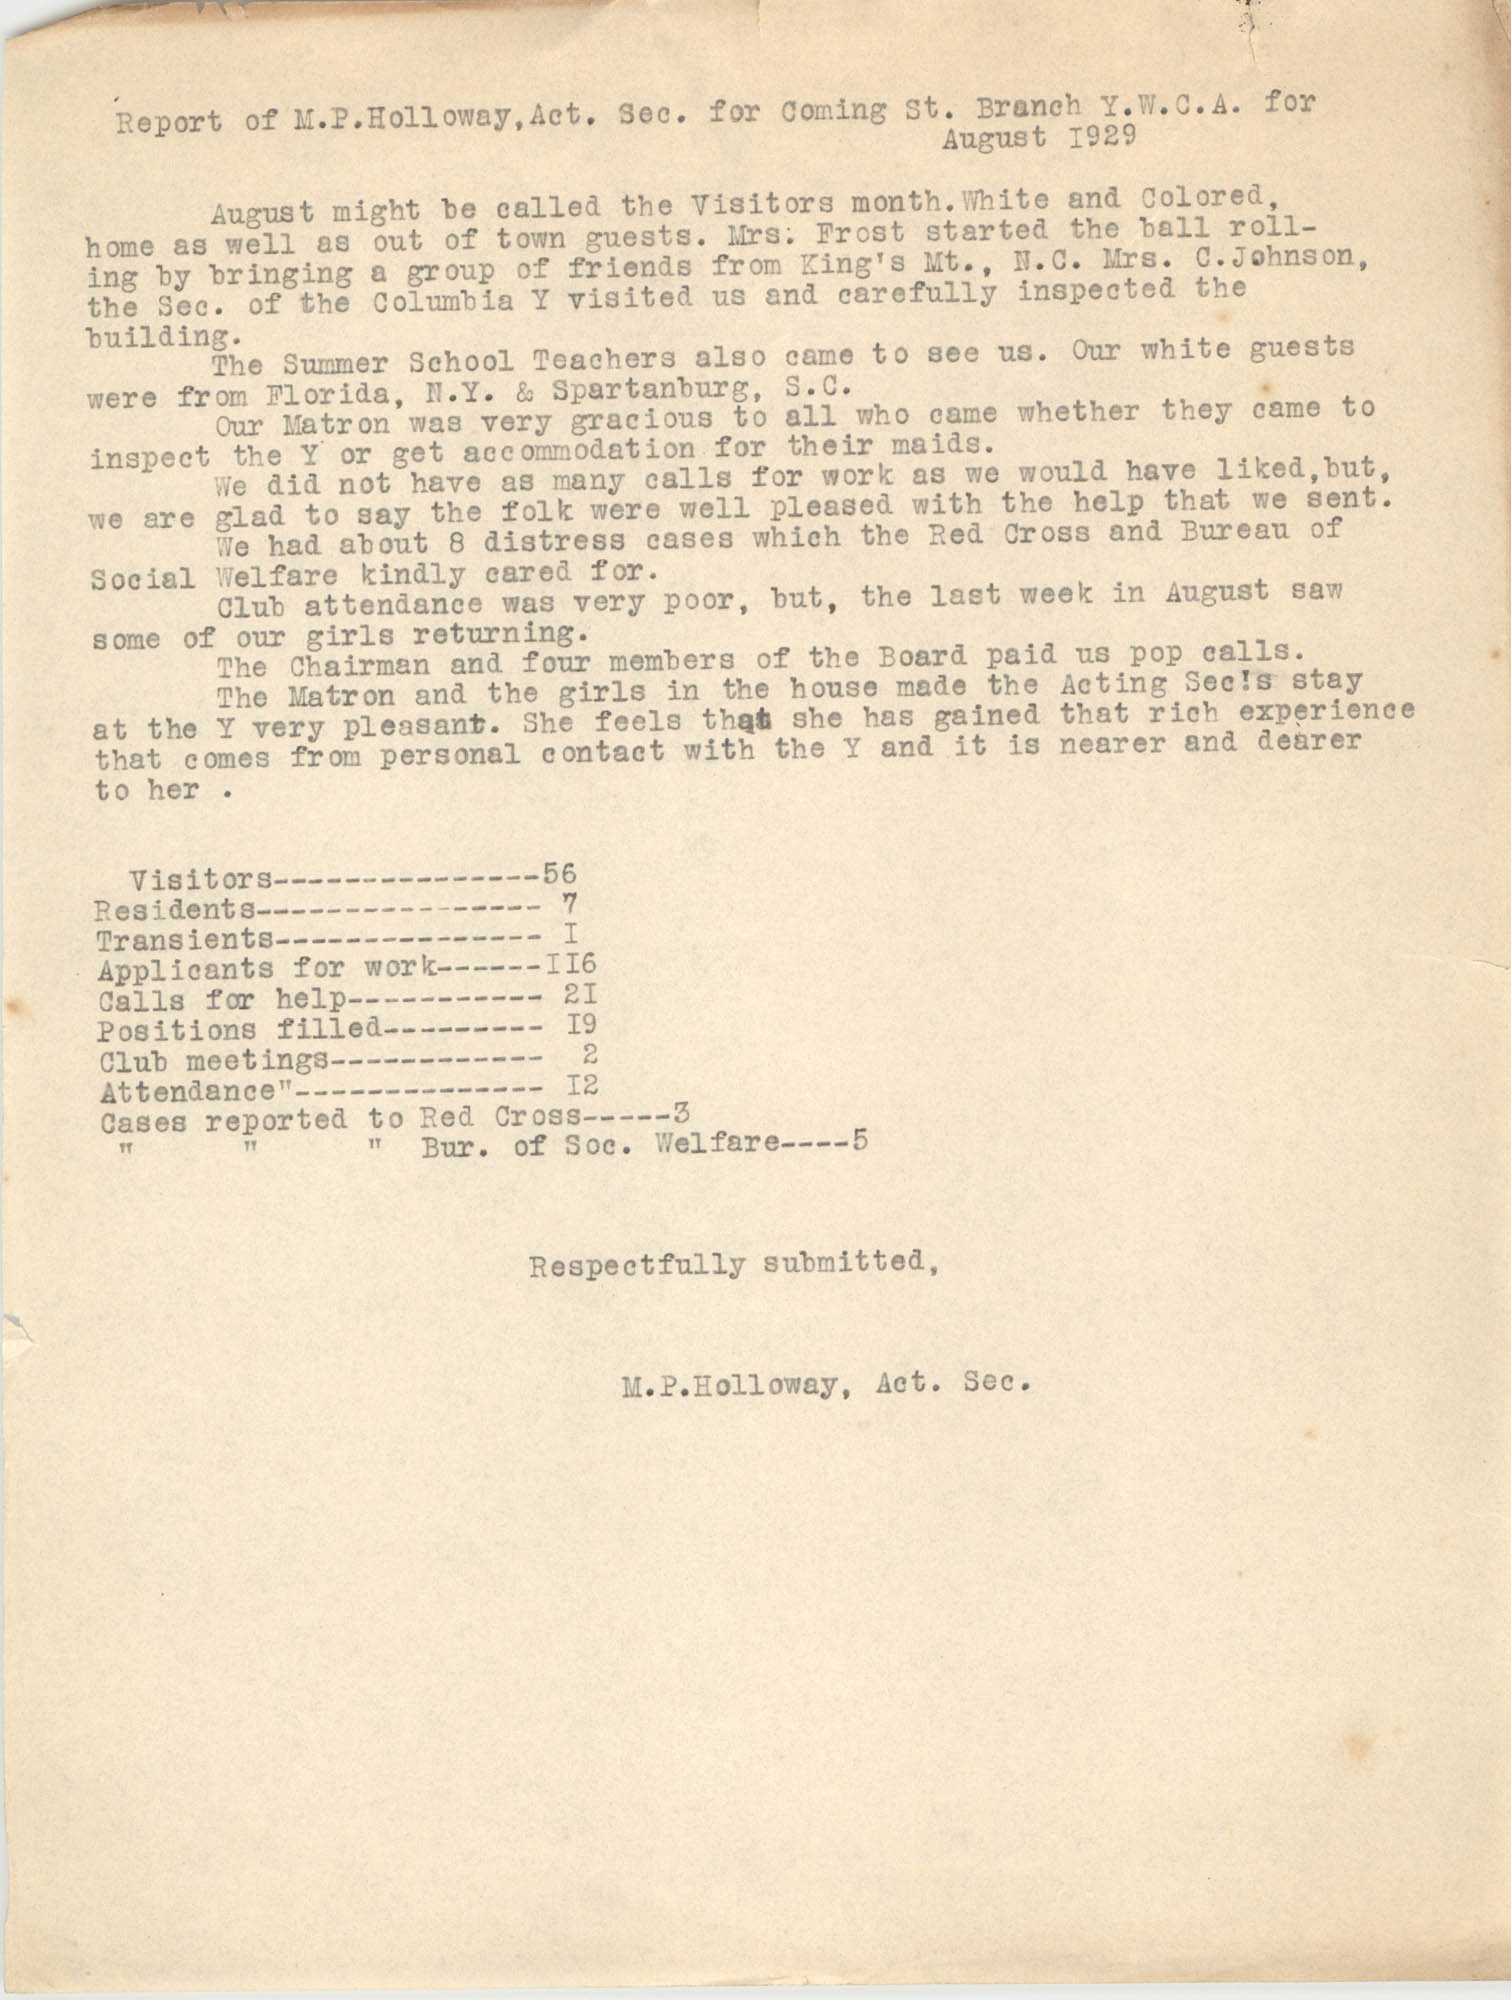 Monthly Report for the Coming Street Y.W.C.A., August 1929